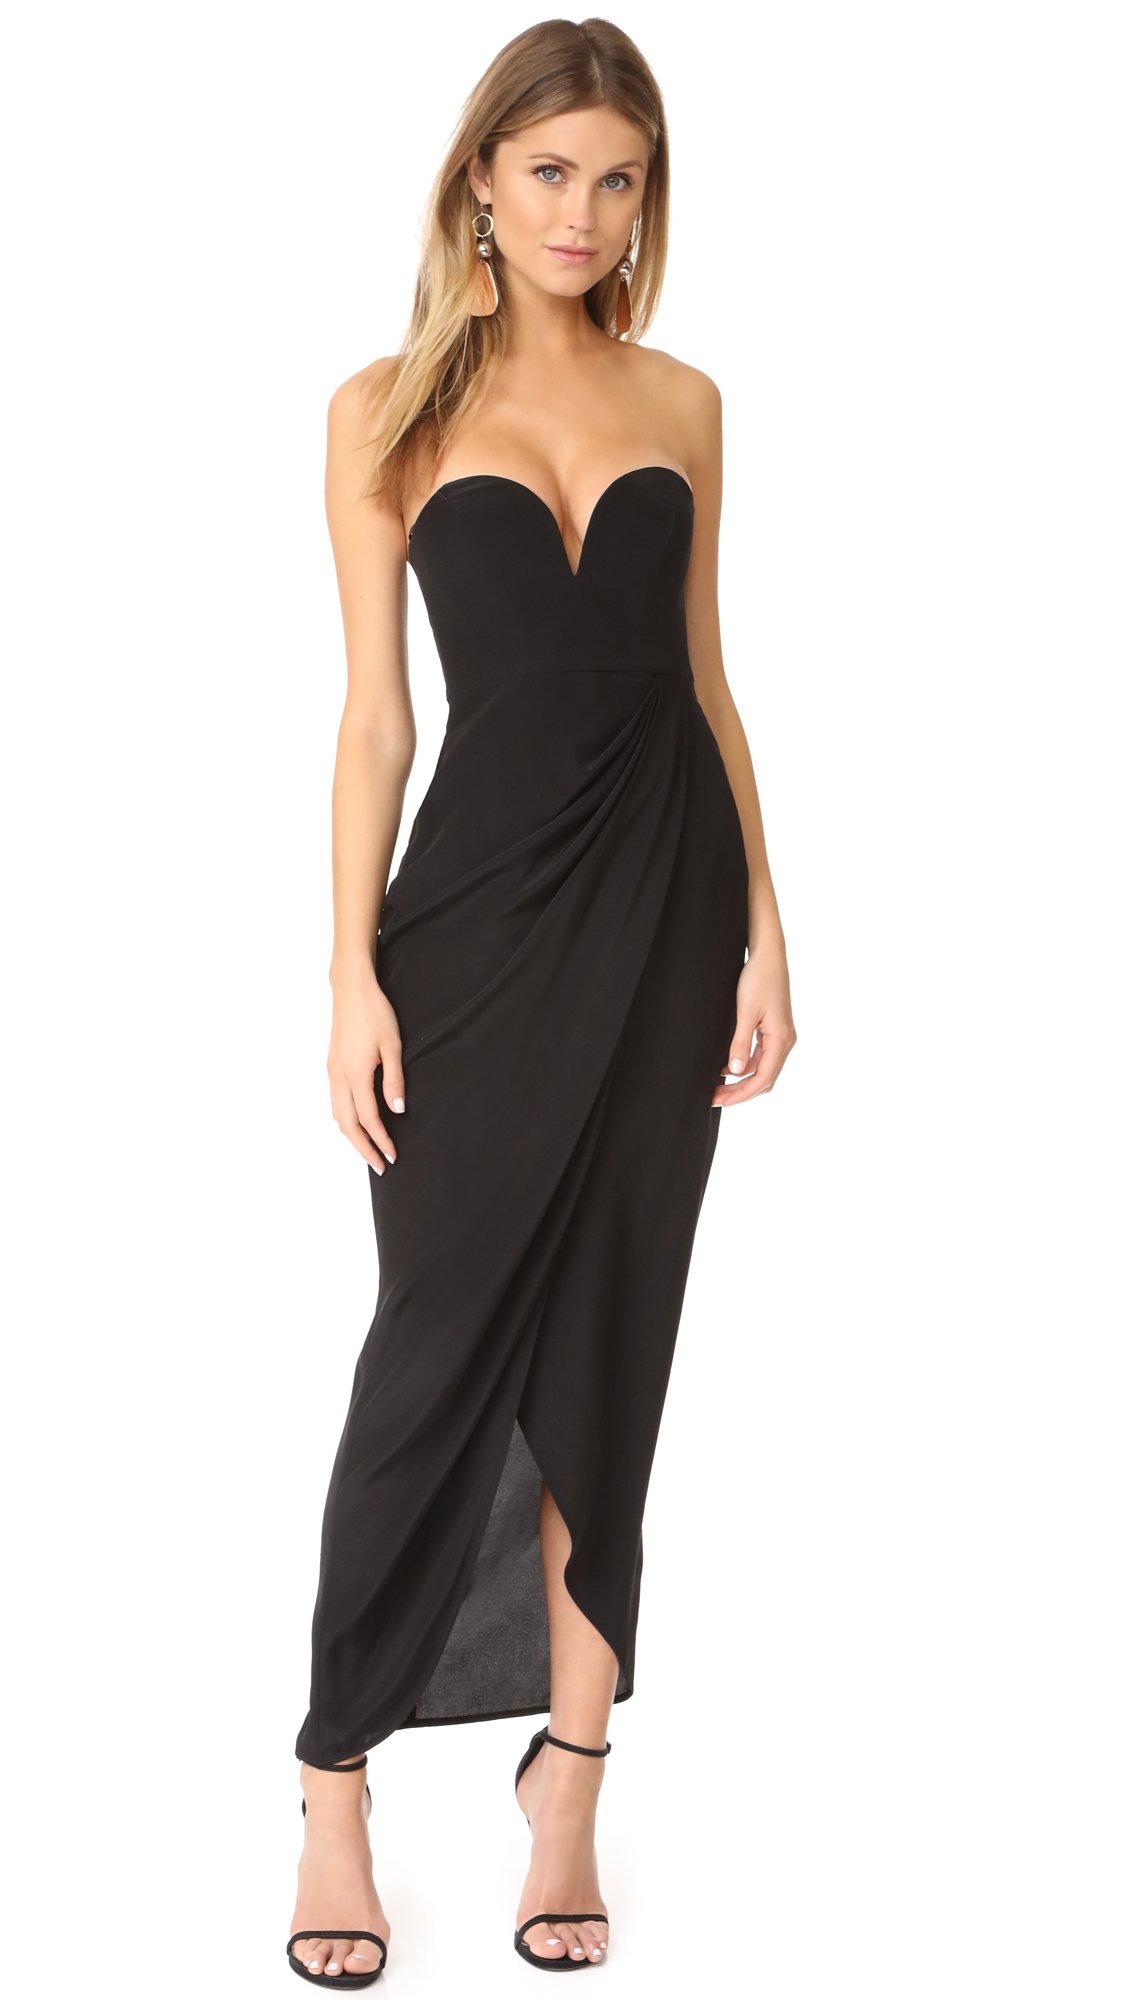 Zimmermann Strapless Drape Maxi Dress - Black